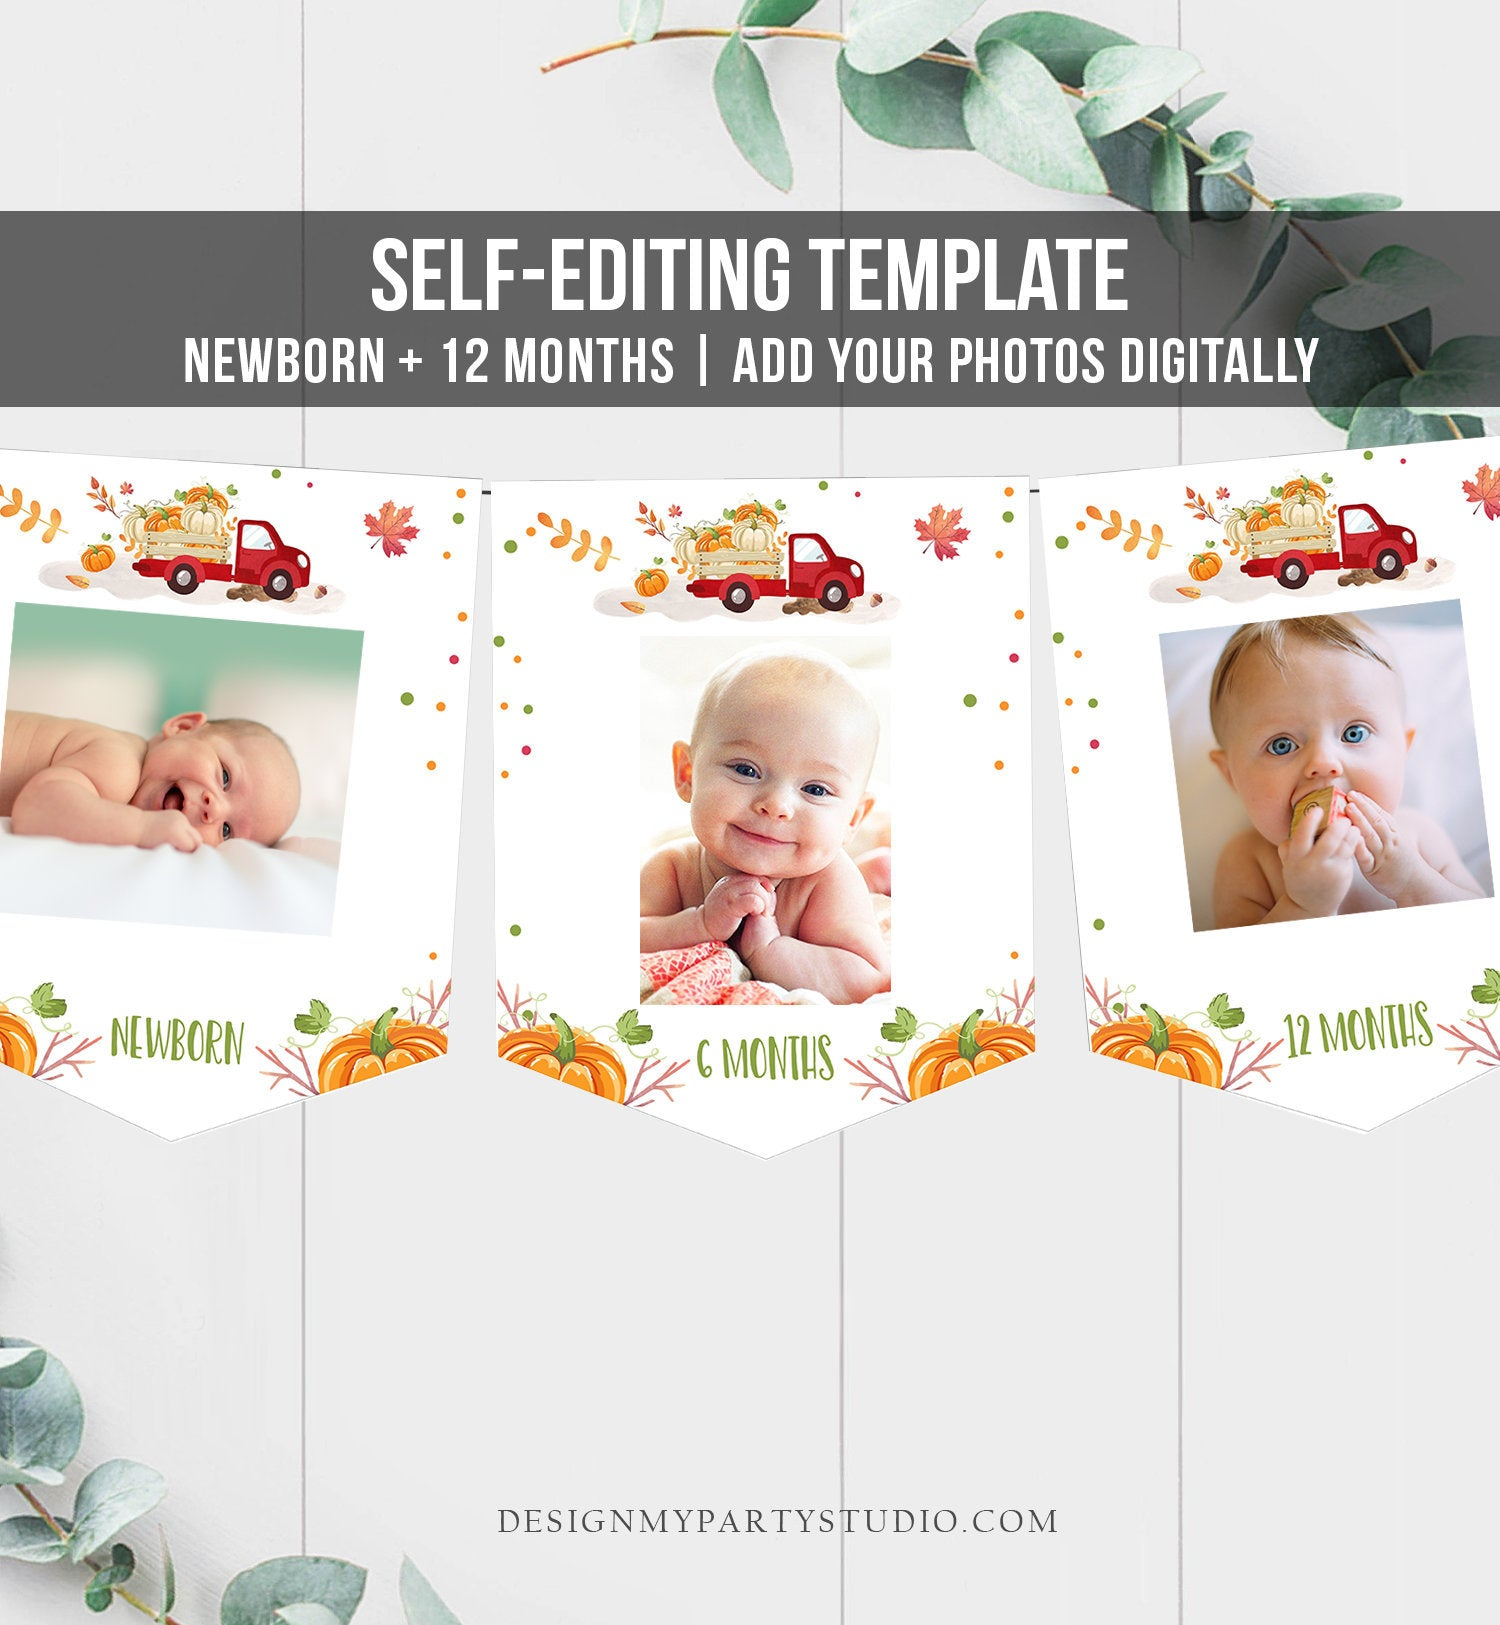 Editable Pumpkin First Birthday Banner Monthly Photo Banner Red Pumpkin Truck Banner Pumpkin Birthday Boy Fall Autumn PRINTABLE Corjl 0153